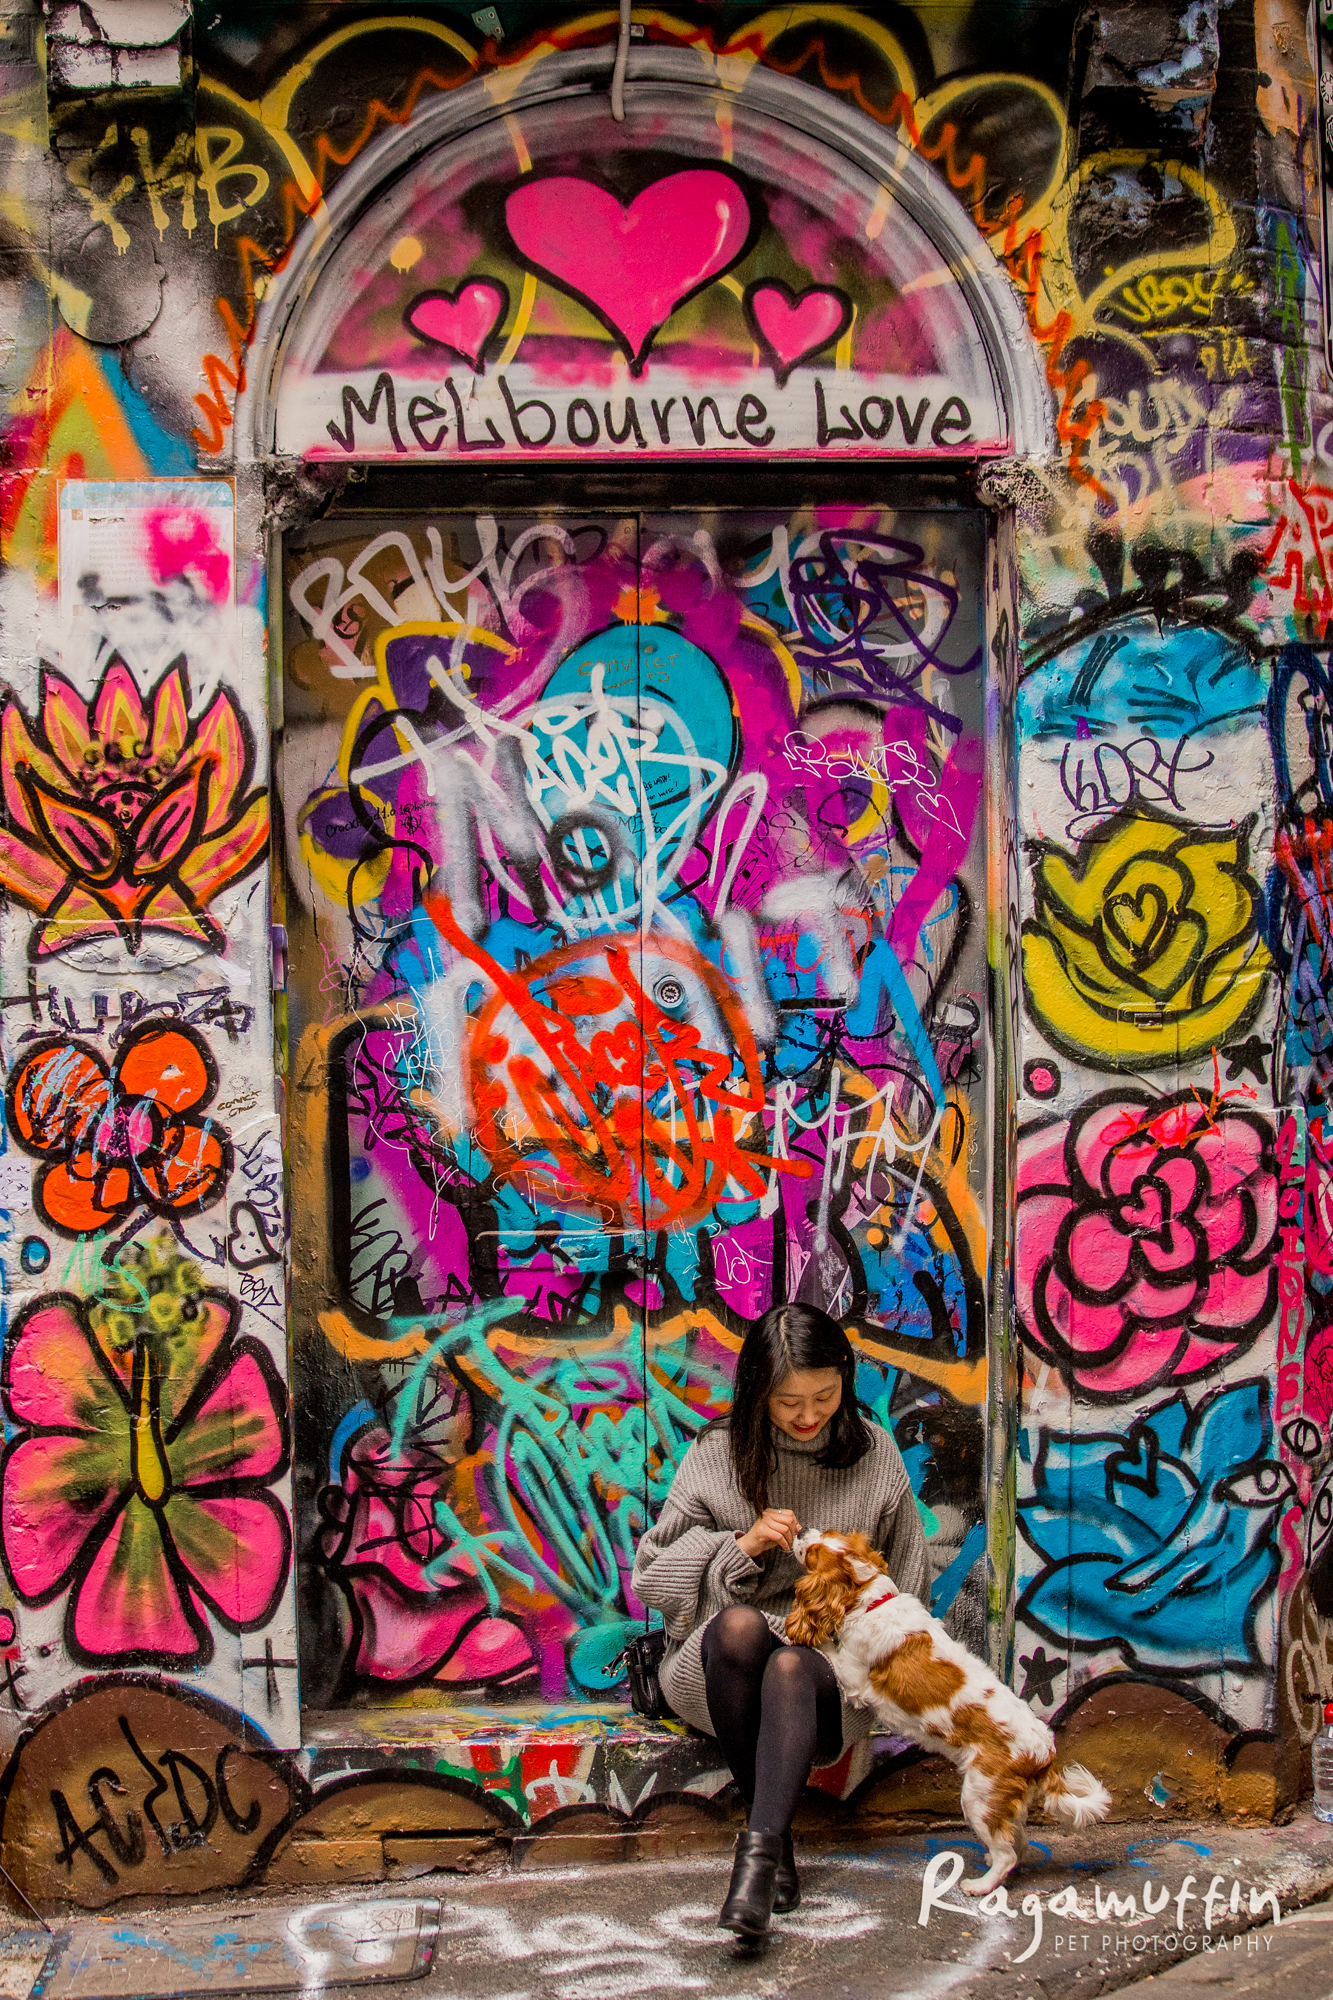 Coco and her mum are leaving Australia, so we did the most Melbourne photoshoot ever to celebrate their time here!